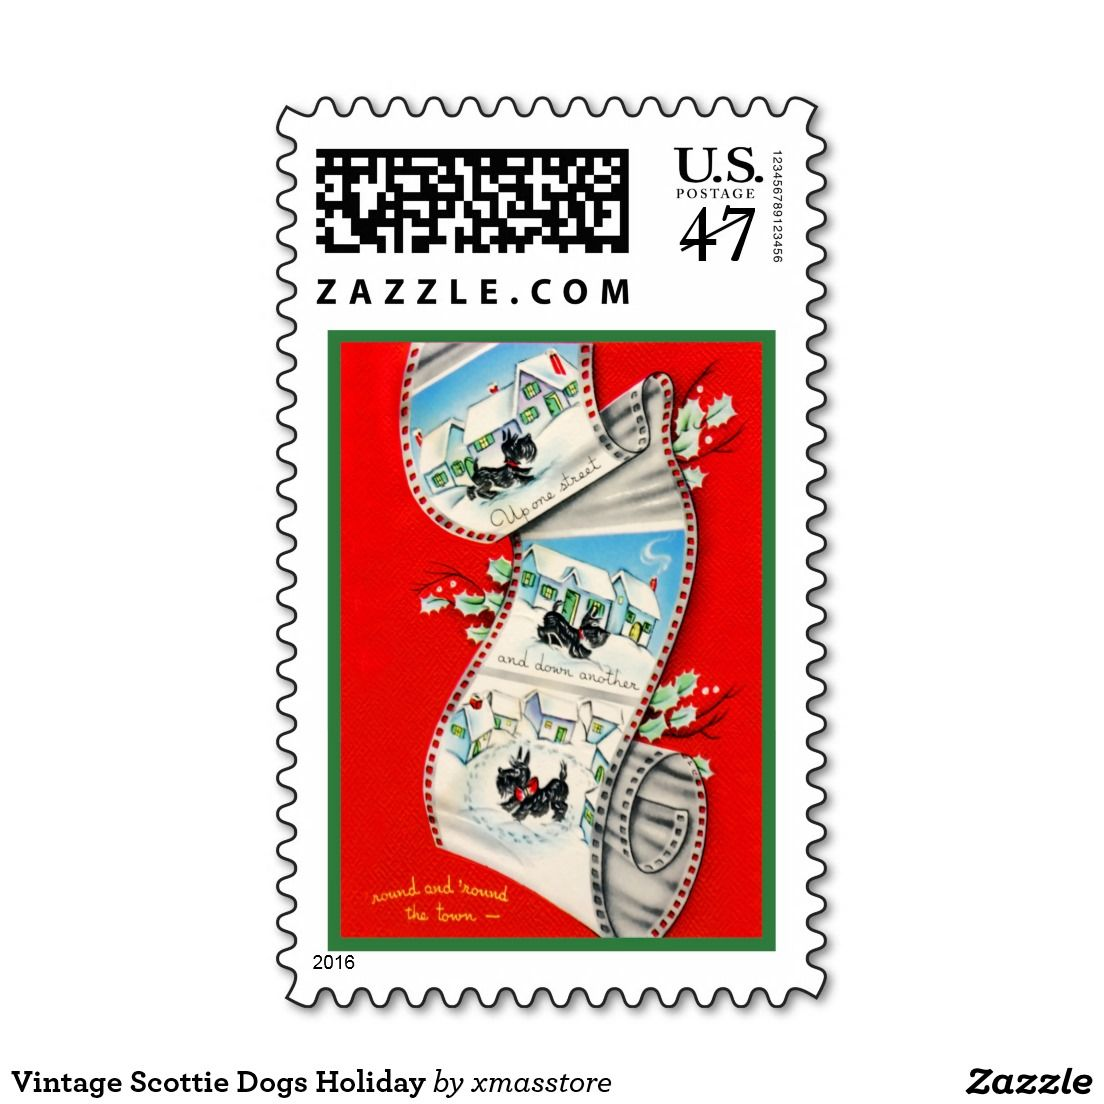 Vintage Scottie Dogs Holiday Postage